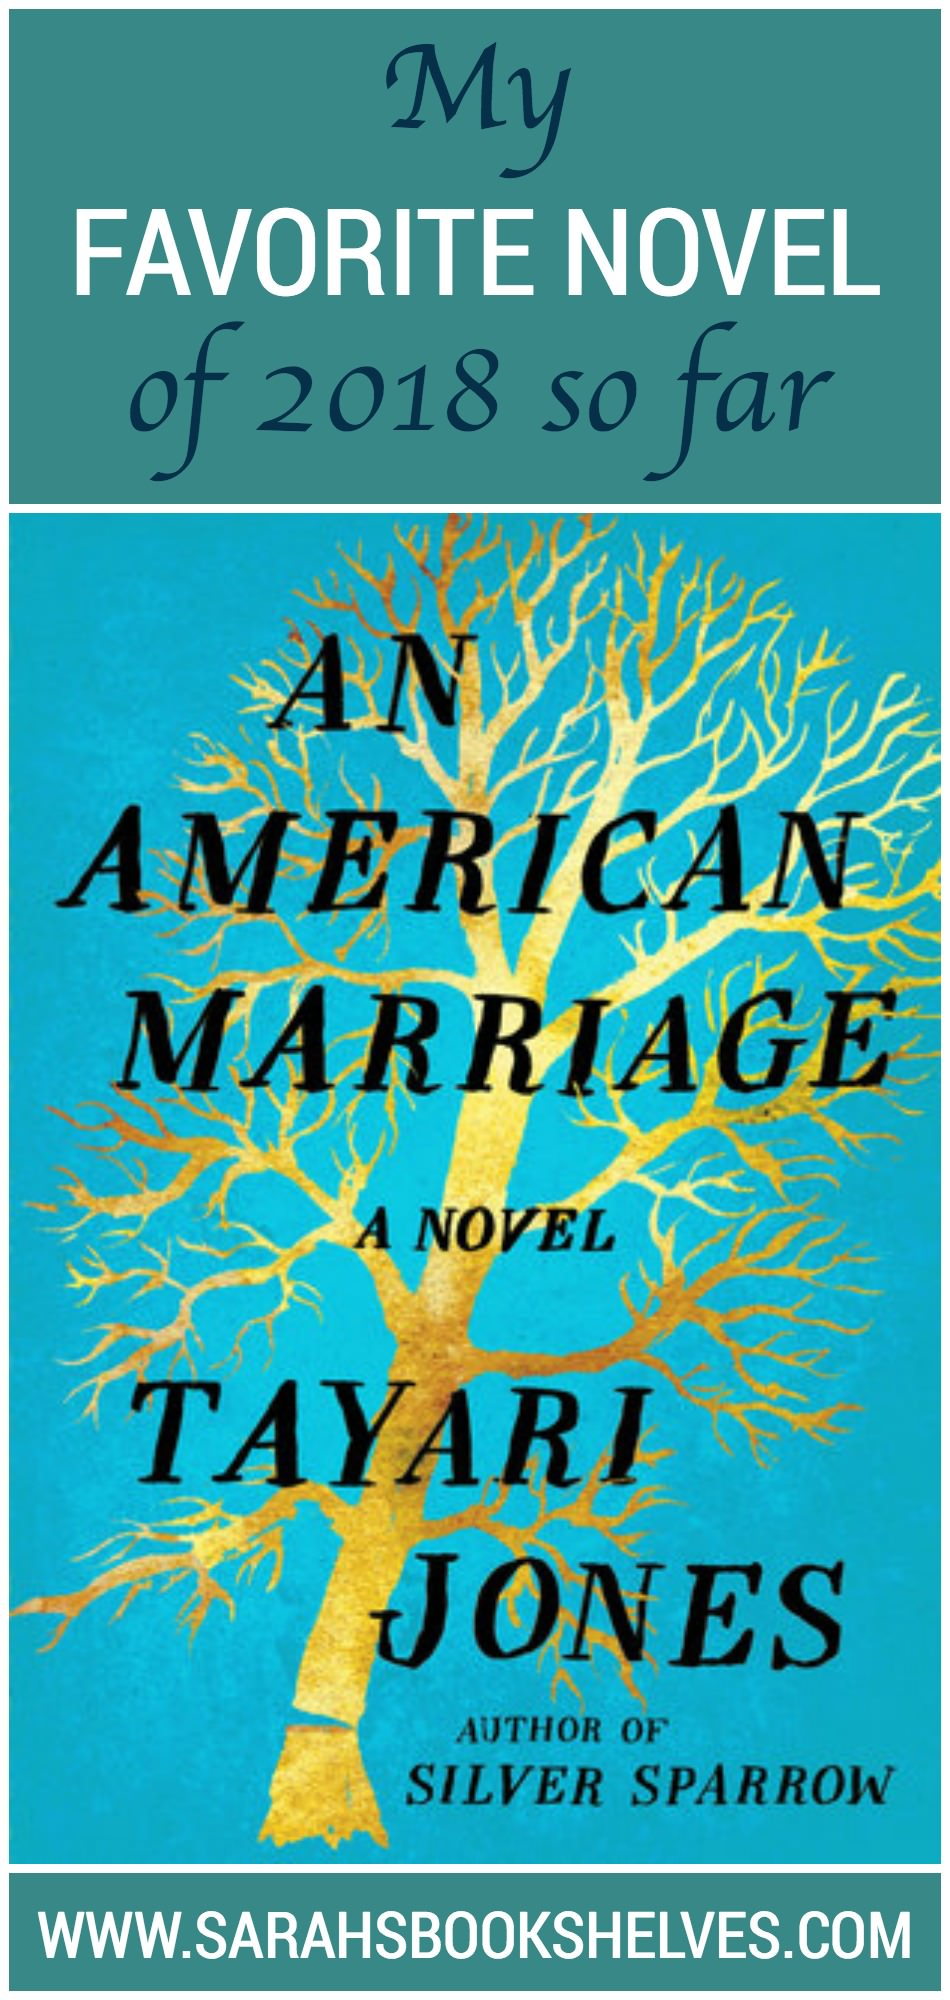 An American Marriage is an intimately written novel that tackles a number of weighty issues in an organic way...and is my favorite novel of 2018 so far! #reading #bookreviews #book #bookish #bookworms #booklovers